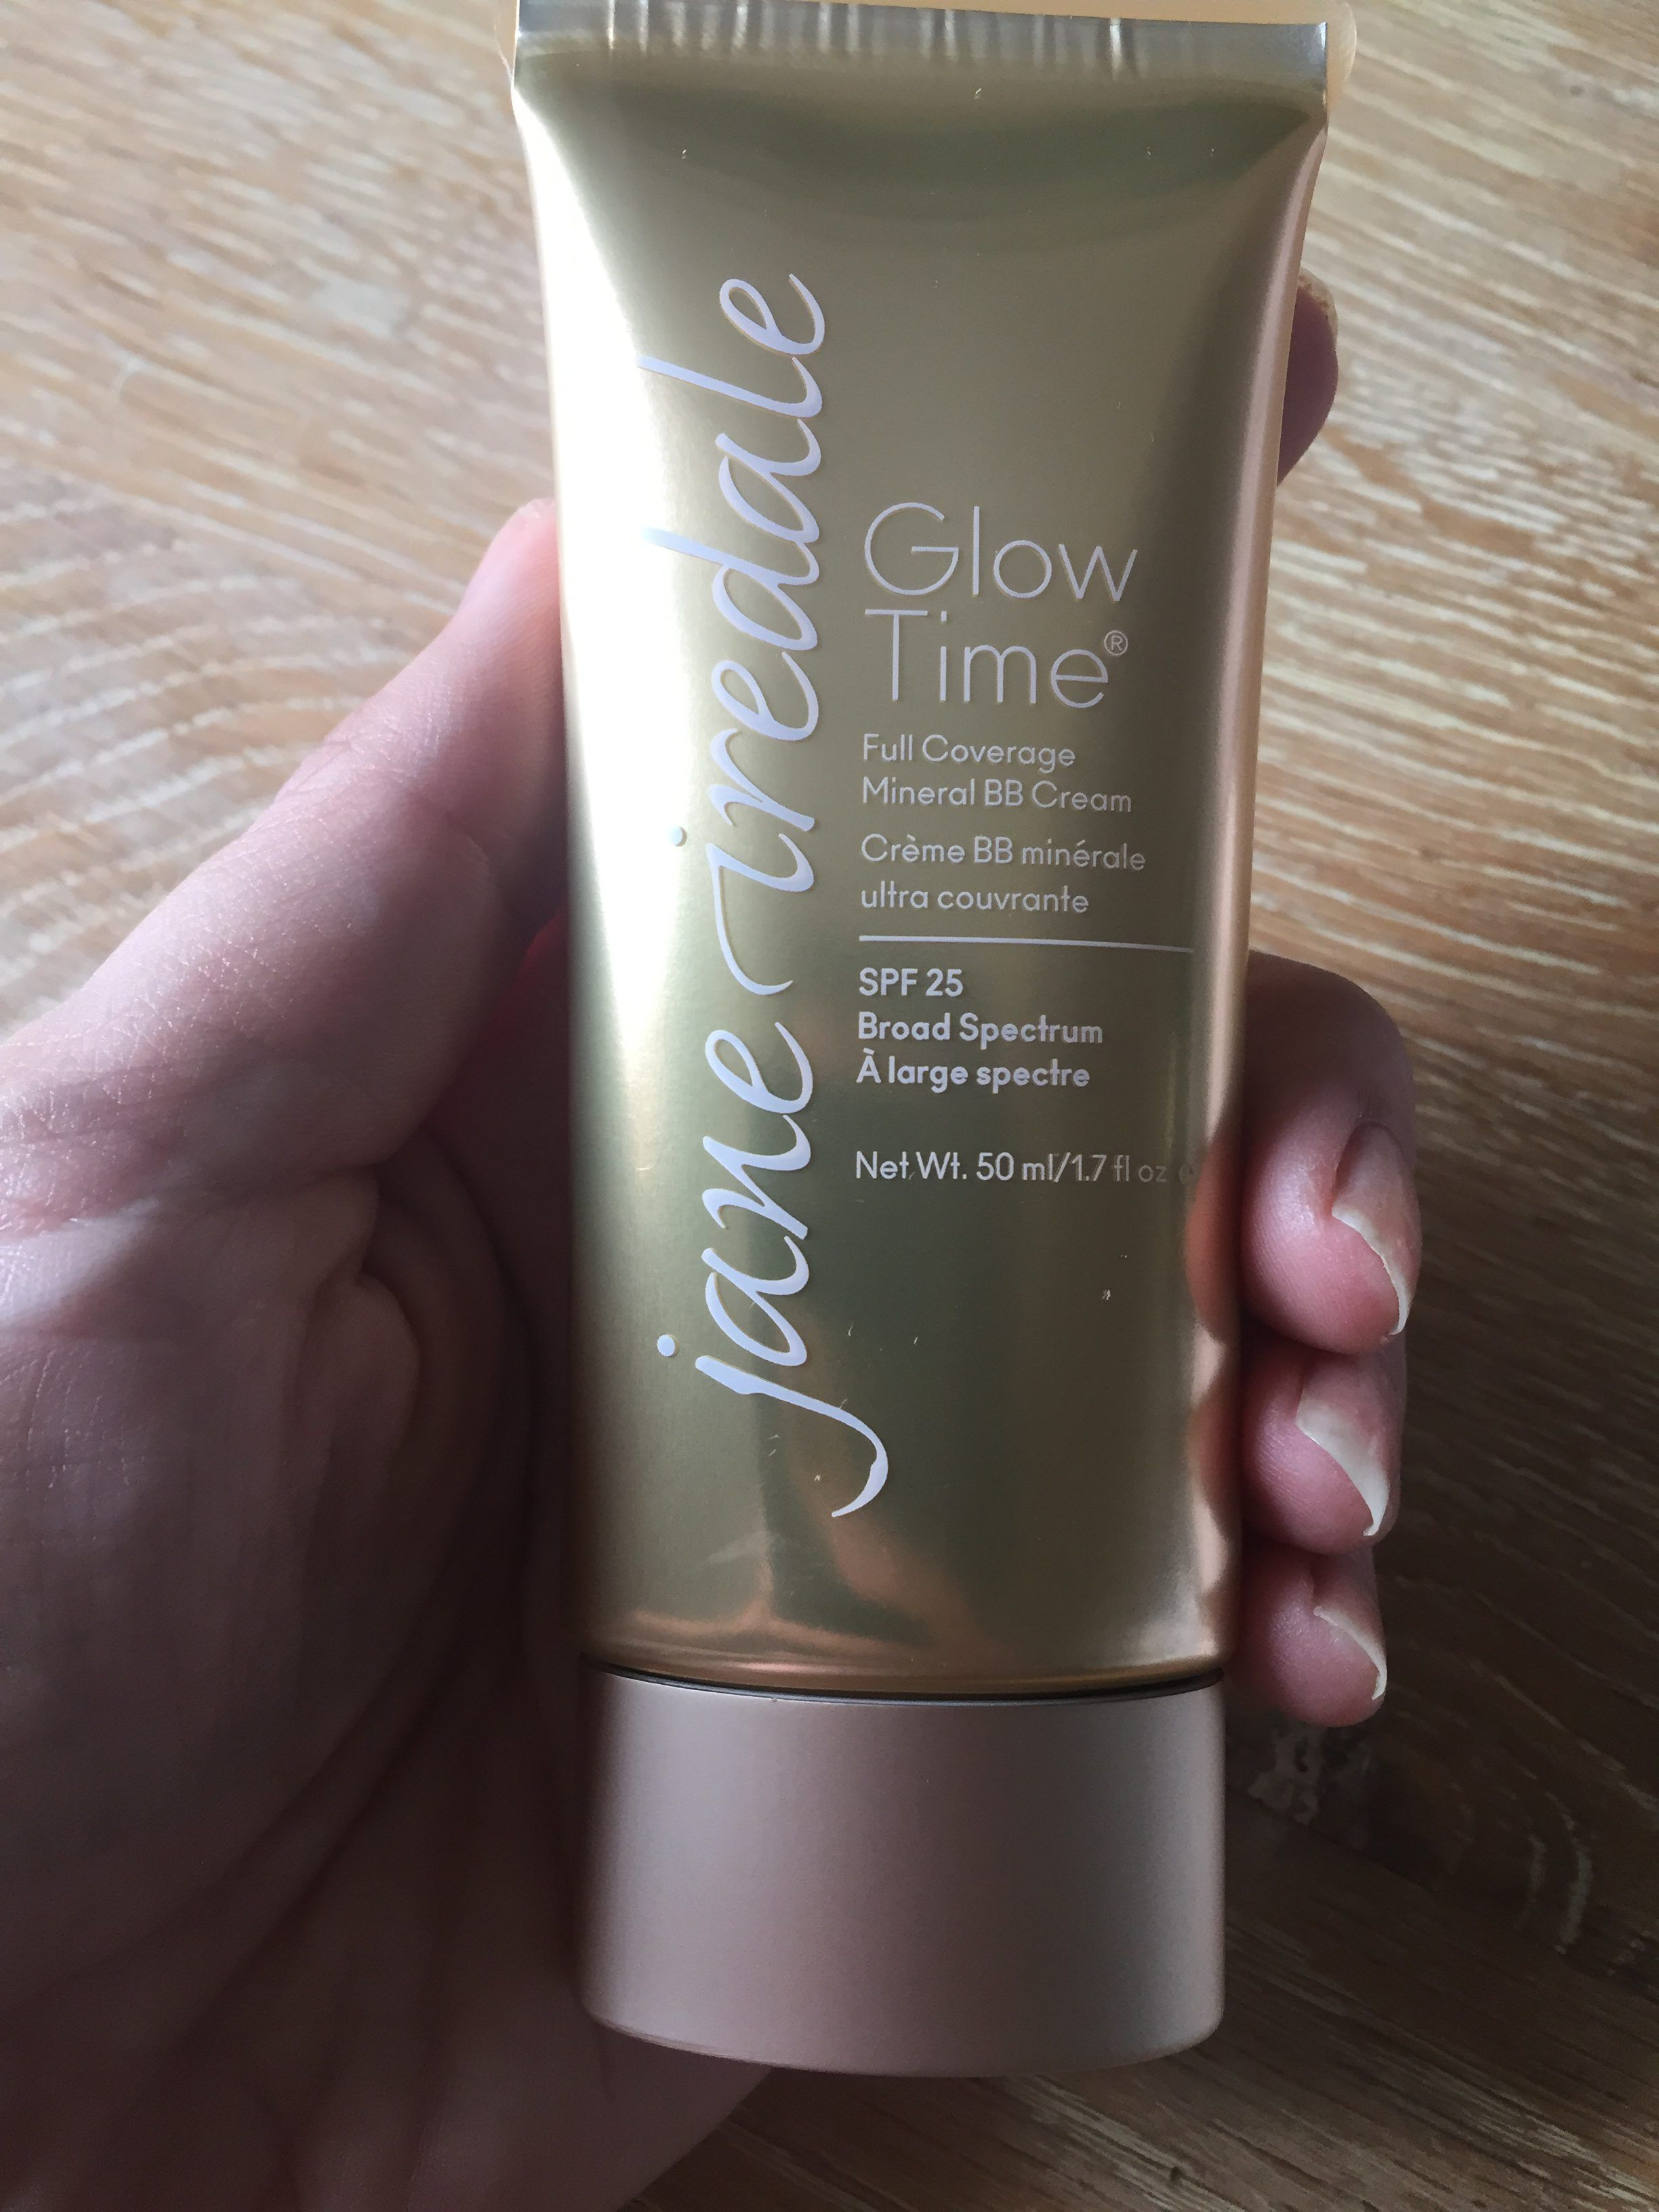 Glow Time BB Cream by Jane Iredale Review (Full Coverage